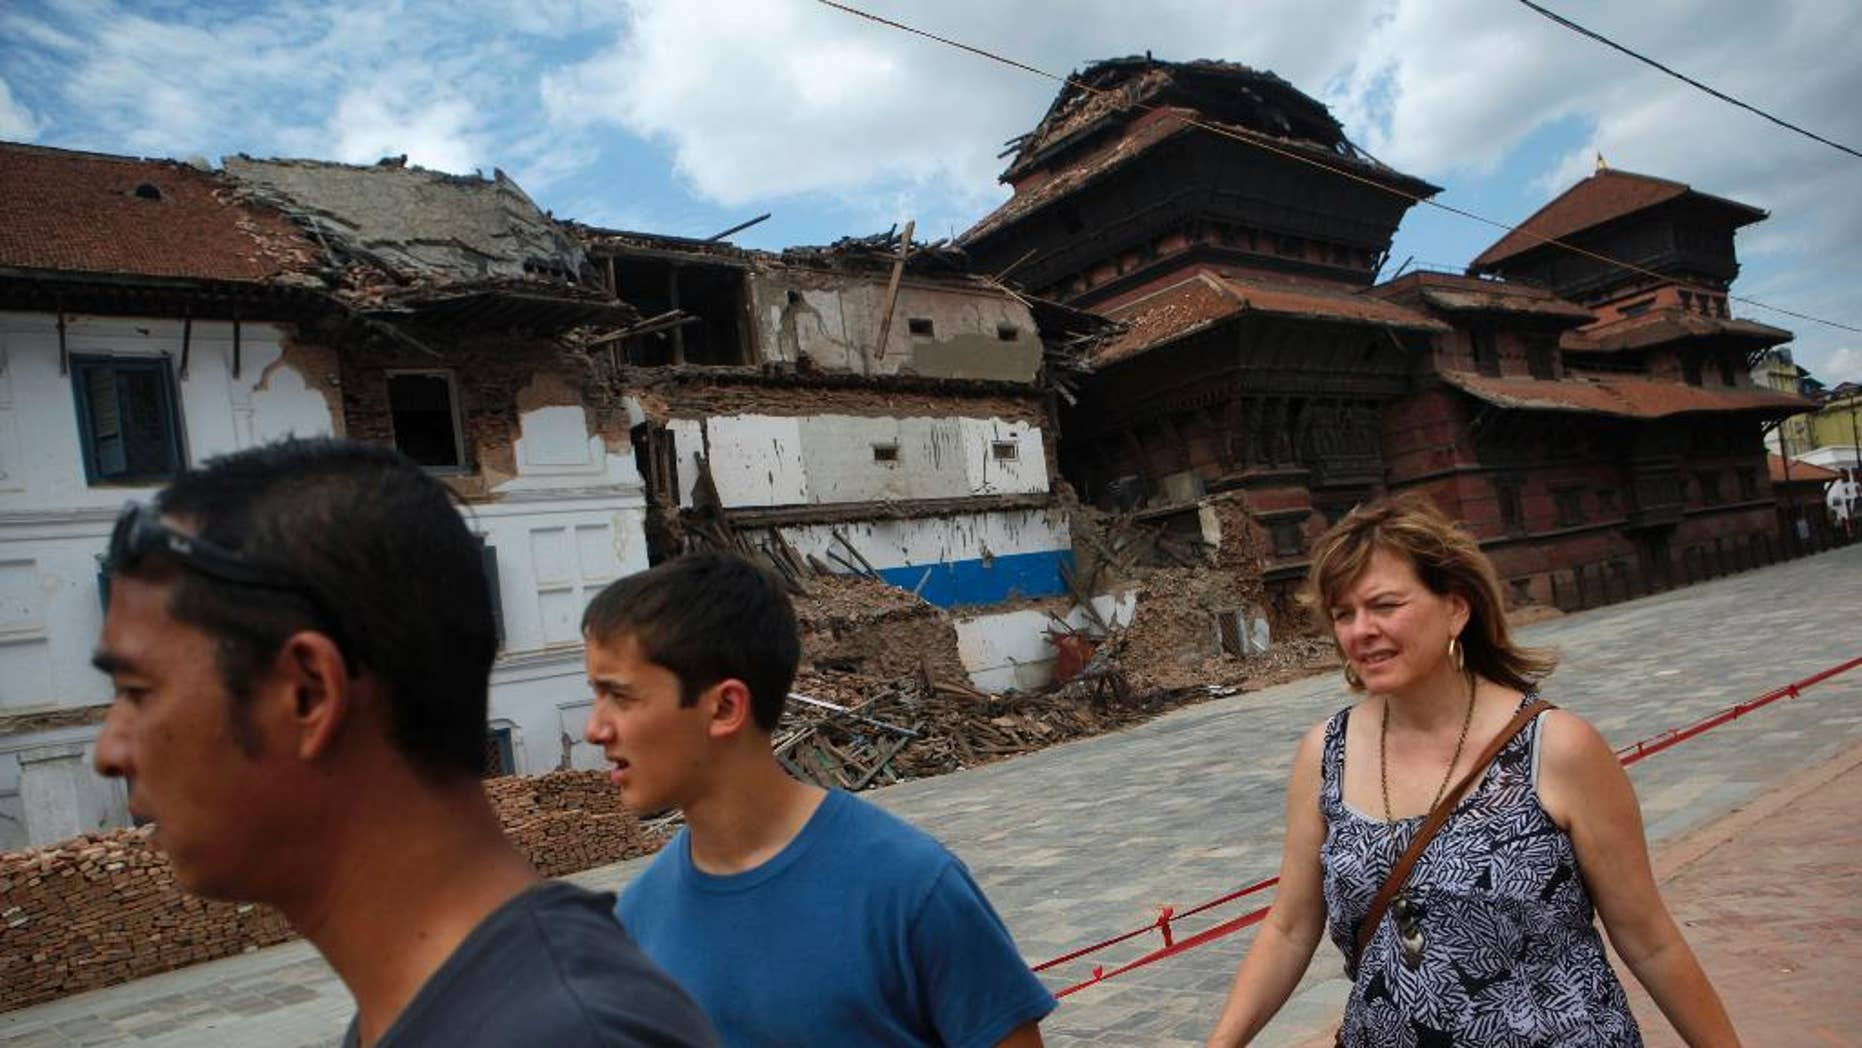 FILE- In this June 15, 2015 file photo, tourists walk near damaged buildings at Basantapur Durbar Square in Kathmandu, Nepal. Nepal's government is urging other countries to lift travel advisories that discourage their citizens from visiting the Himalayan nation following a devastating earthquake in April that killed thousands of people, a government minister said Wednesday, July 15, 2015. (AP Photo/Niranjan Shrestha, file)